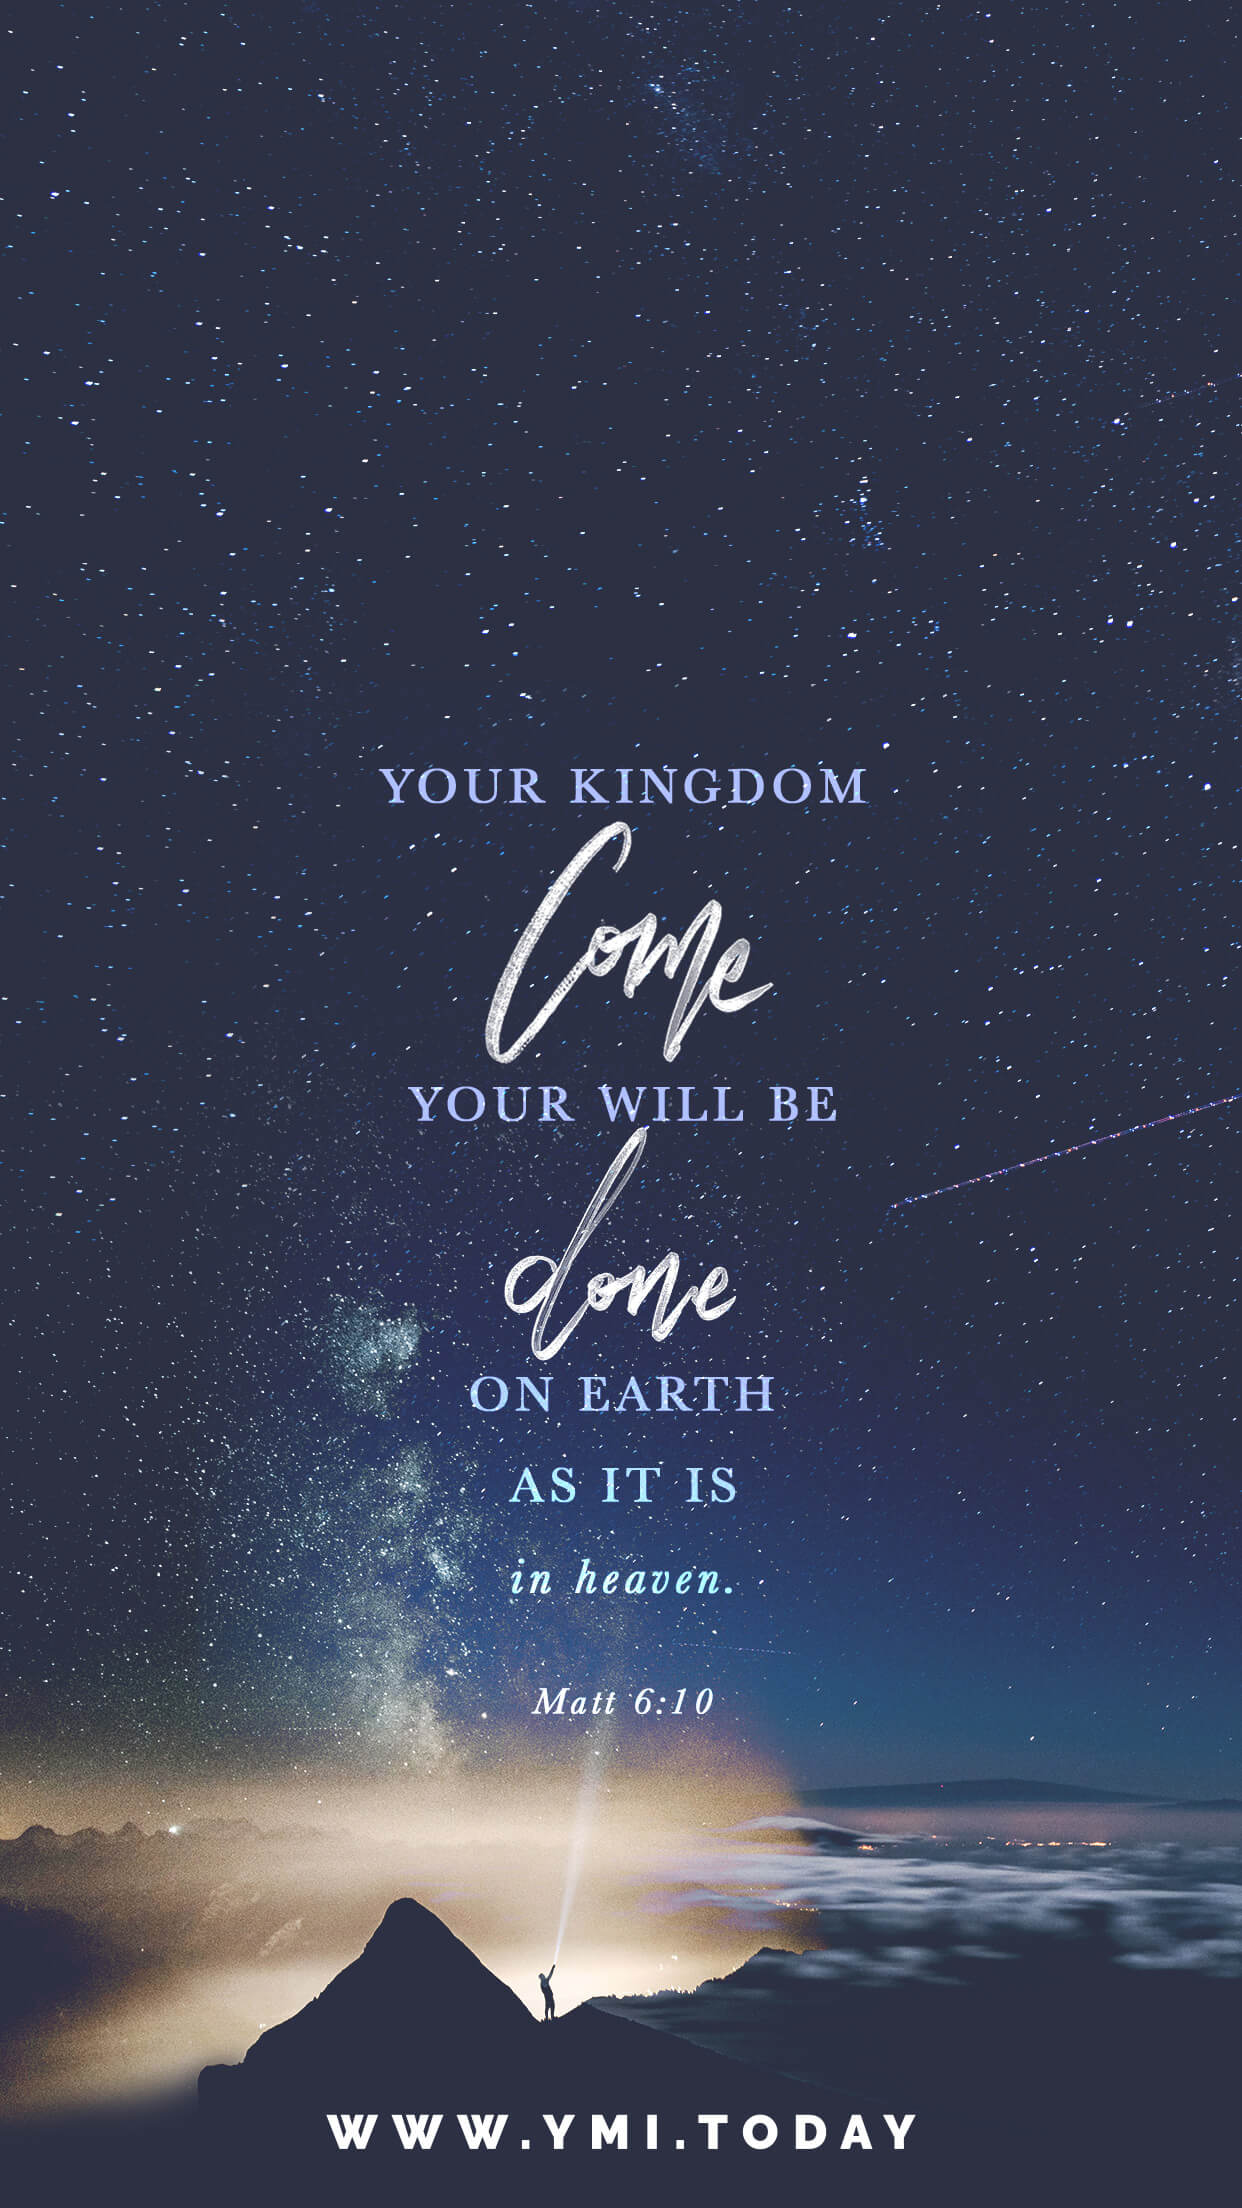 YMI May 2017 Phone Lockscreen - Your kingdom come. Your will be done, on earth as it is in heaven. - Matthew 6:10